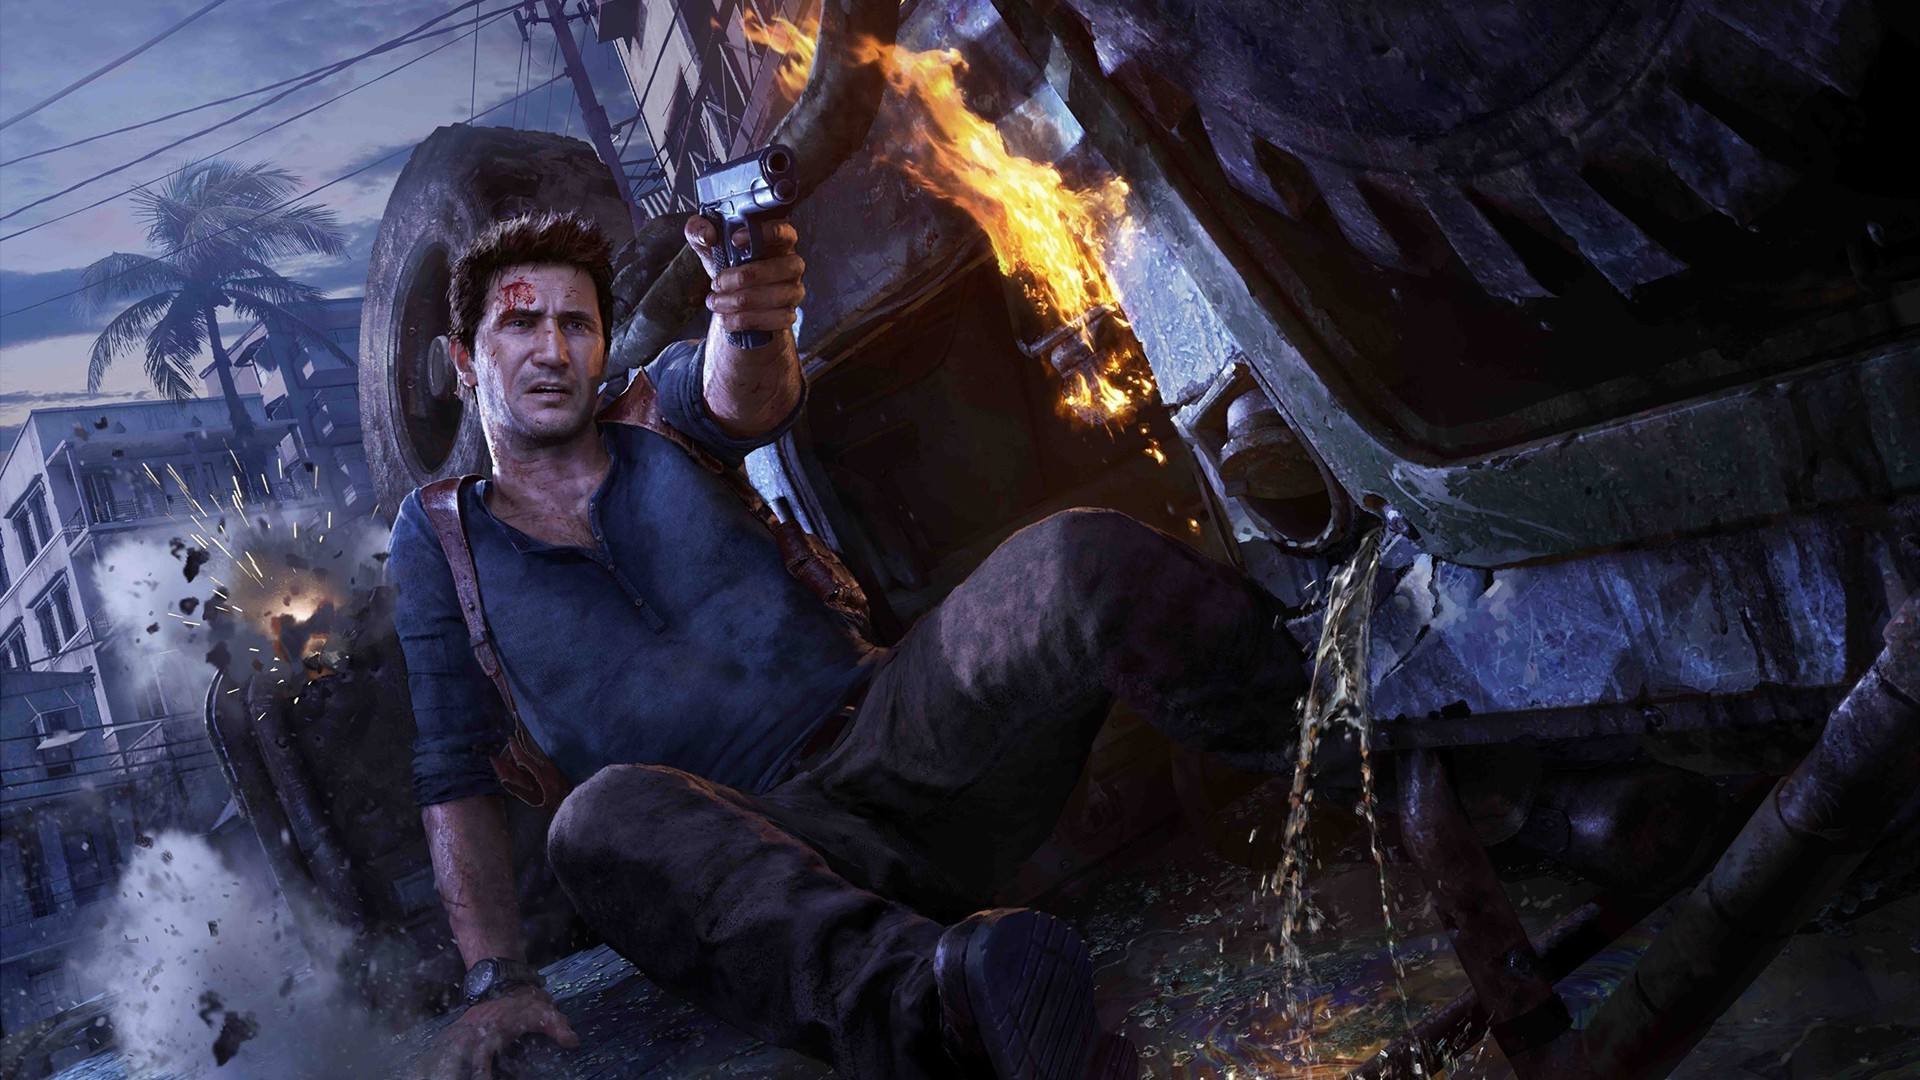 1920x1080 Nathan Drake, Uncharted 4: A Thiefs End, Video Games, PlayStation 4  Wallpapers HD / Desktop and Mobile Backgrounds